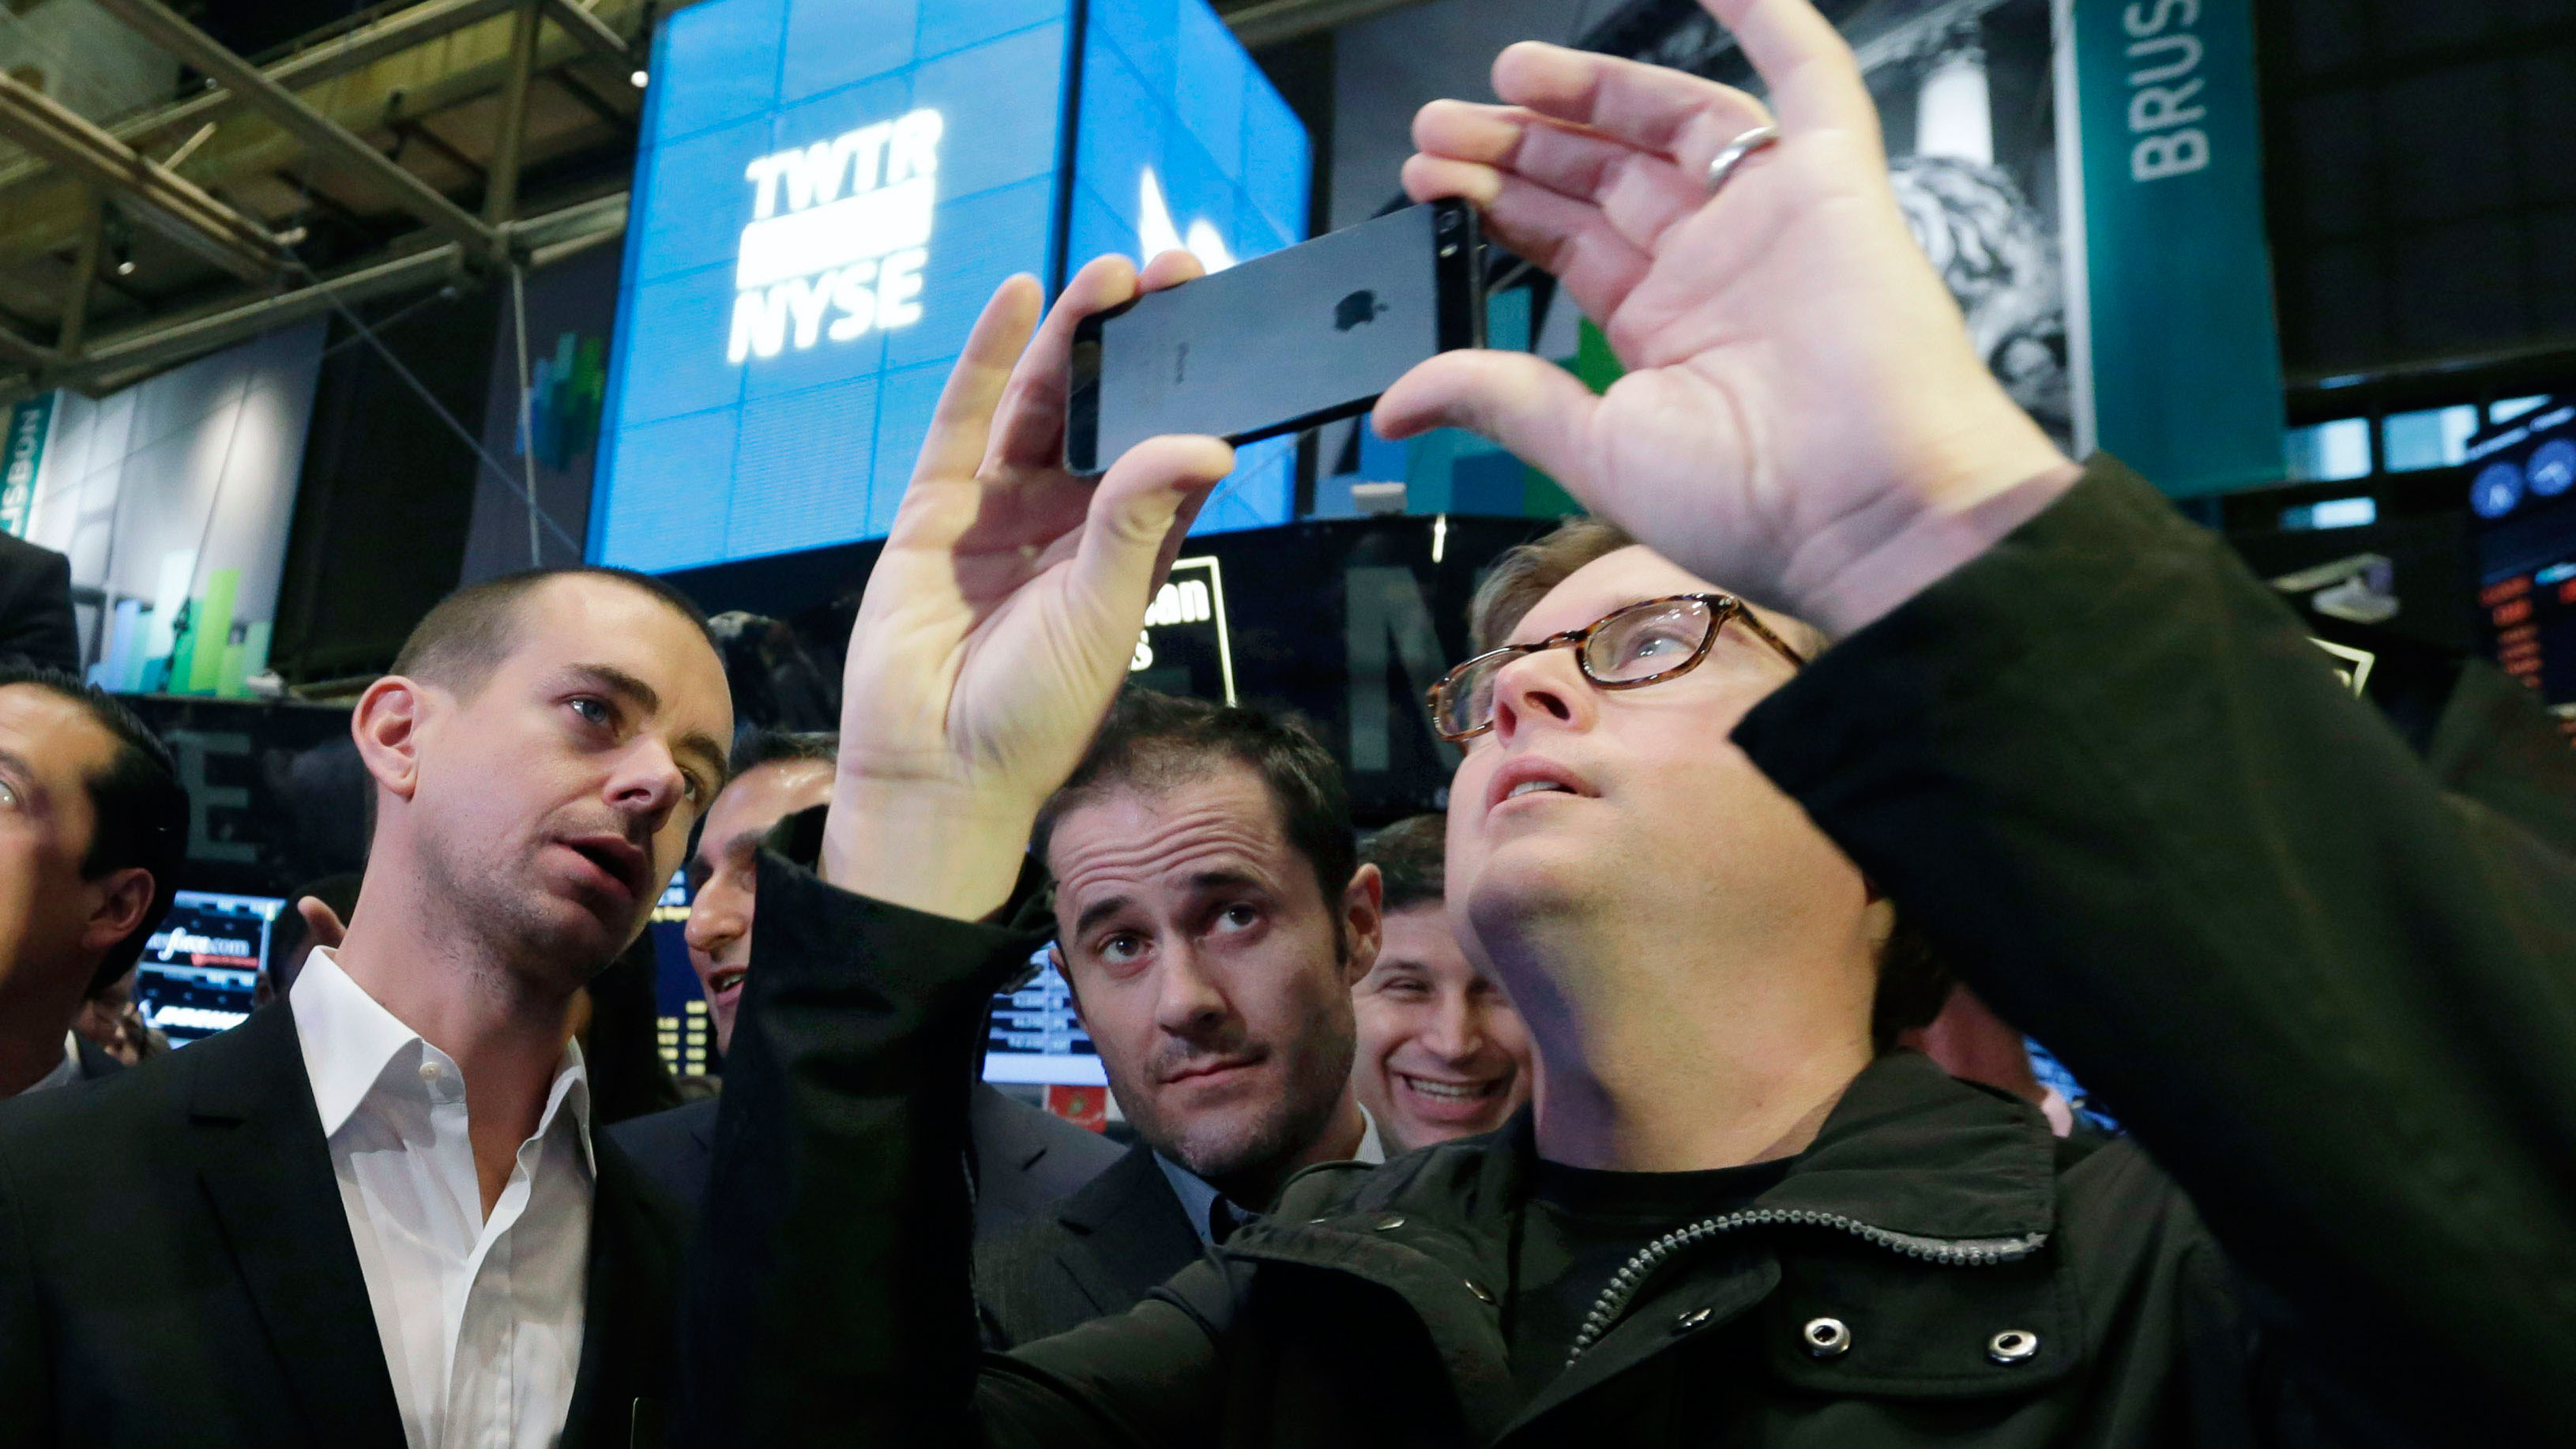 Twitter Chairman and co-founder Jack Dorsey, and co-founders Evan Williams and Biz Stone, wait for the opening bell to be rung at the New York Stock Exchange, Thursday, Nov. 7, 2013. If Twitter's bankers and executives were hoping for a surge on the day of the stock's public debut, they got it. The stock opened at $45.10 a share on its first day of trading, 73 percent above its initial offering price. (AP Photo/Richard Drew)